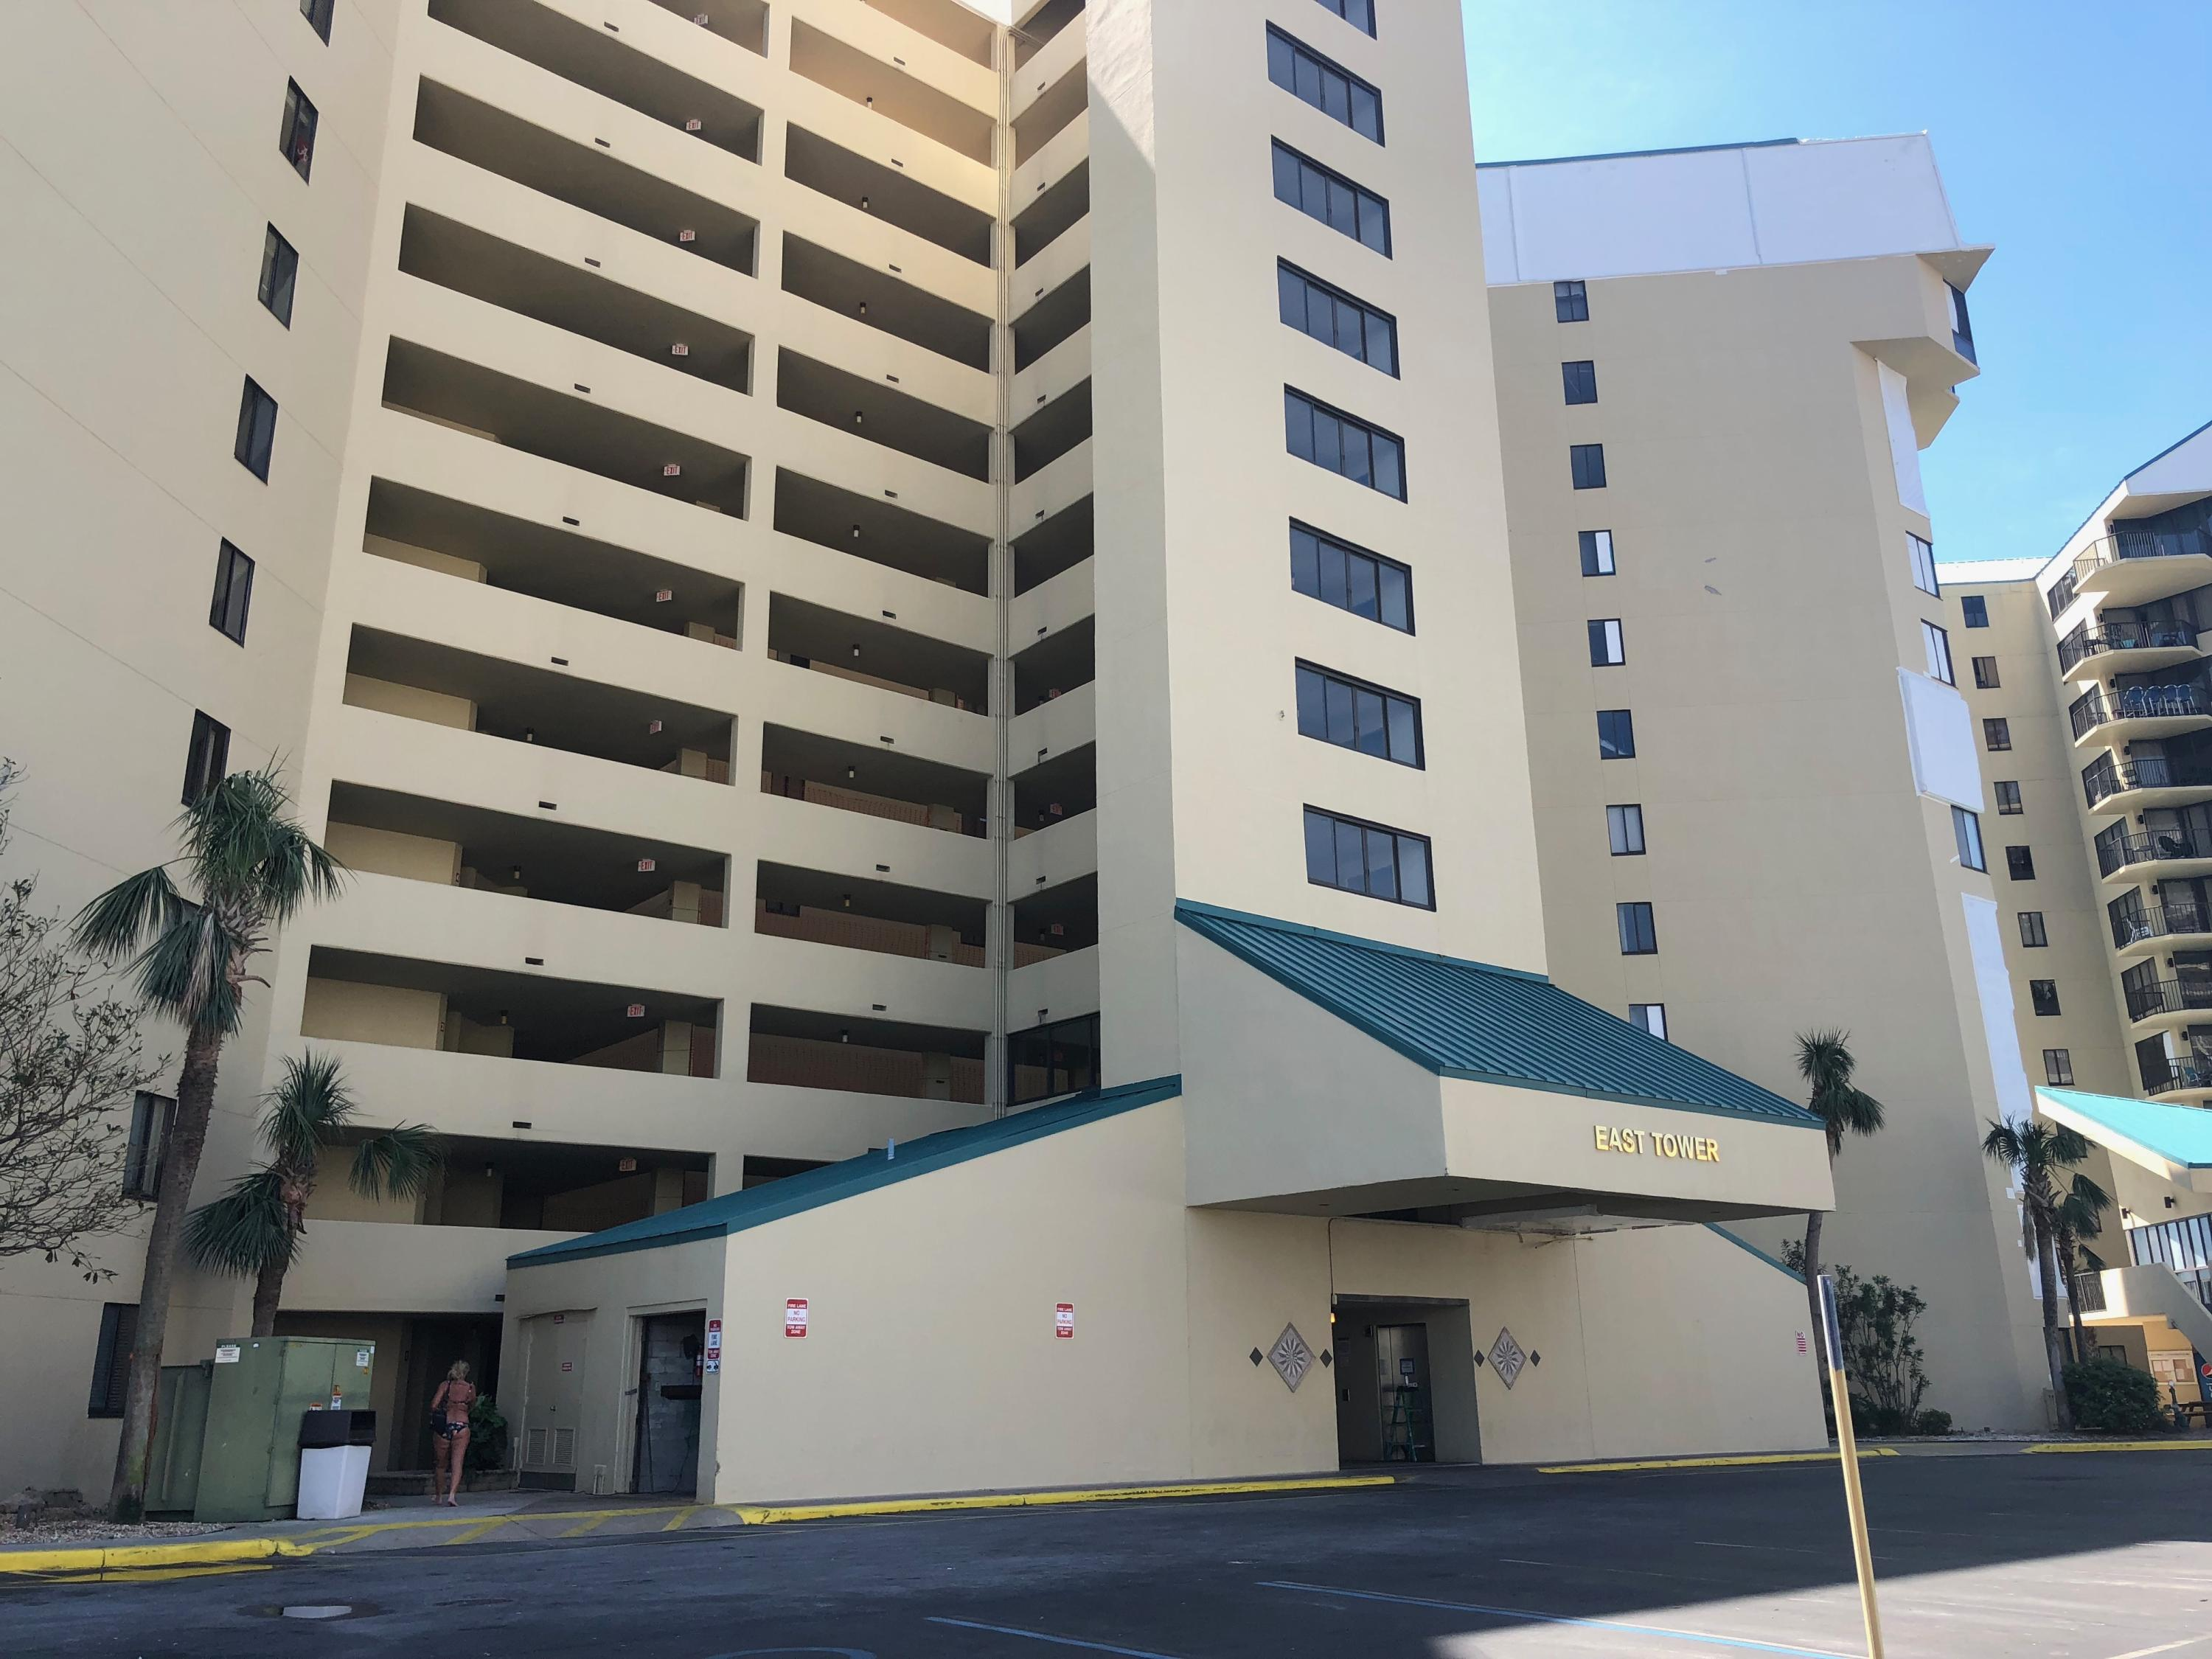 This unit has drywall damage from Hurricane Michael.  The fee has been paid for repairs that will be completed by the HOA.  All measurements are believed accurate but should be checked if important to buyer.  This complex is a super rental property in close proximity to all of the shopping and dining that makes this area so popular to guests.  The pool is presently not operational but will be redone.  This one bedroom is close to the grill area and would be a great beach get away or a full time rental property for it's owner.